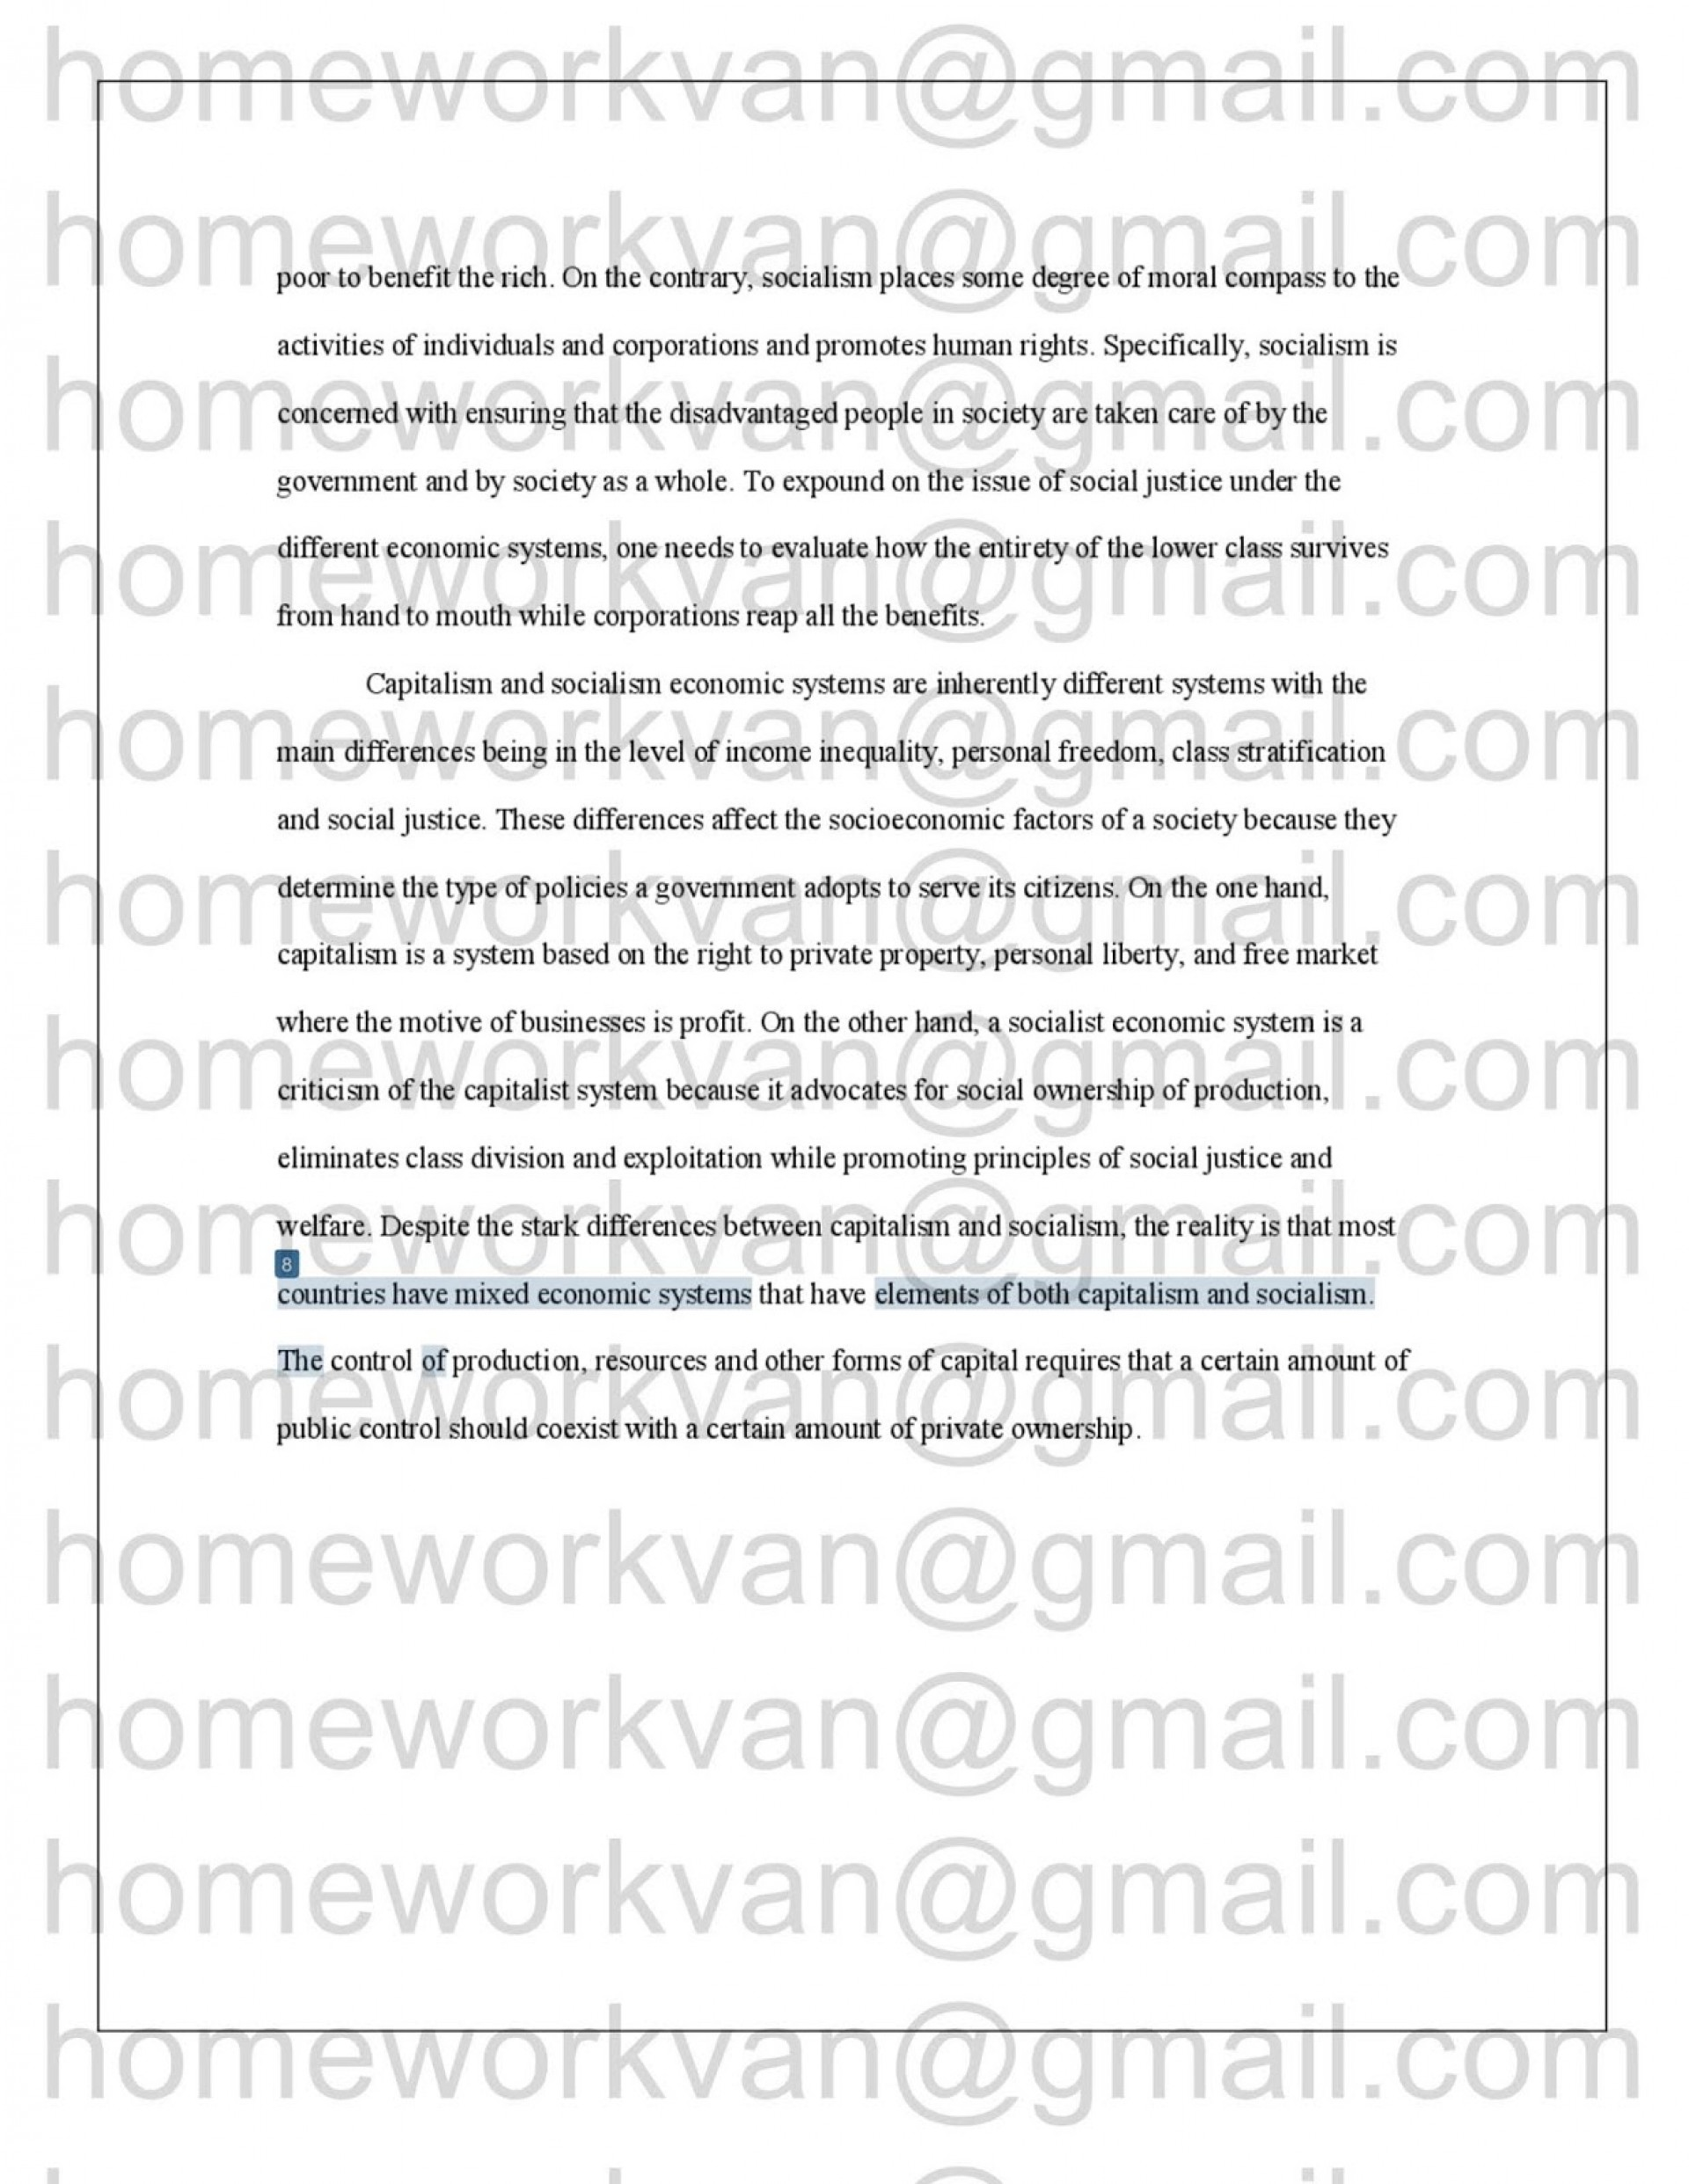 005 Compare2band2bcontrast2bessay2beconomic2bsystems2b252812529 Essay Example Breathtaking Capitalism Topics Question Pdf 1920